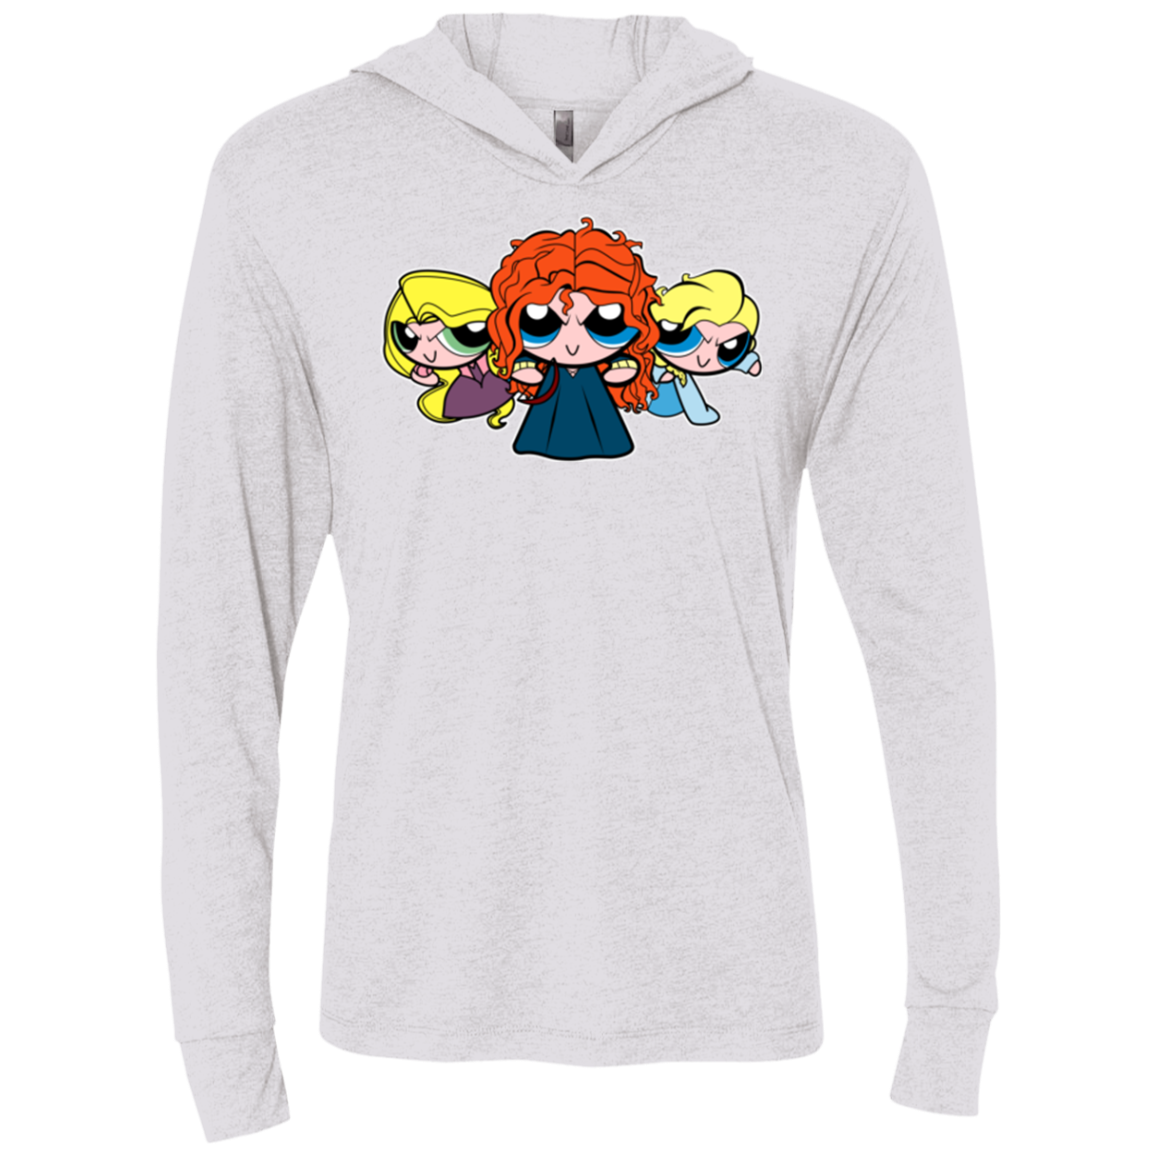 Princess Puff Girls2 Triblend Long Sleeve Hoodie Tee